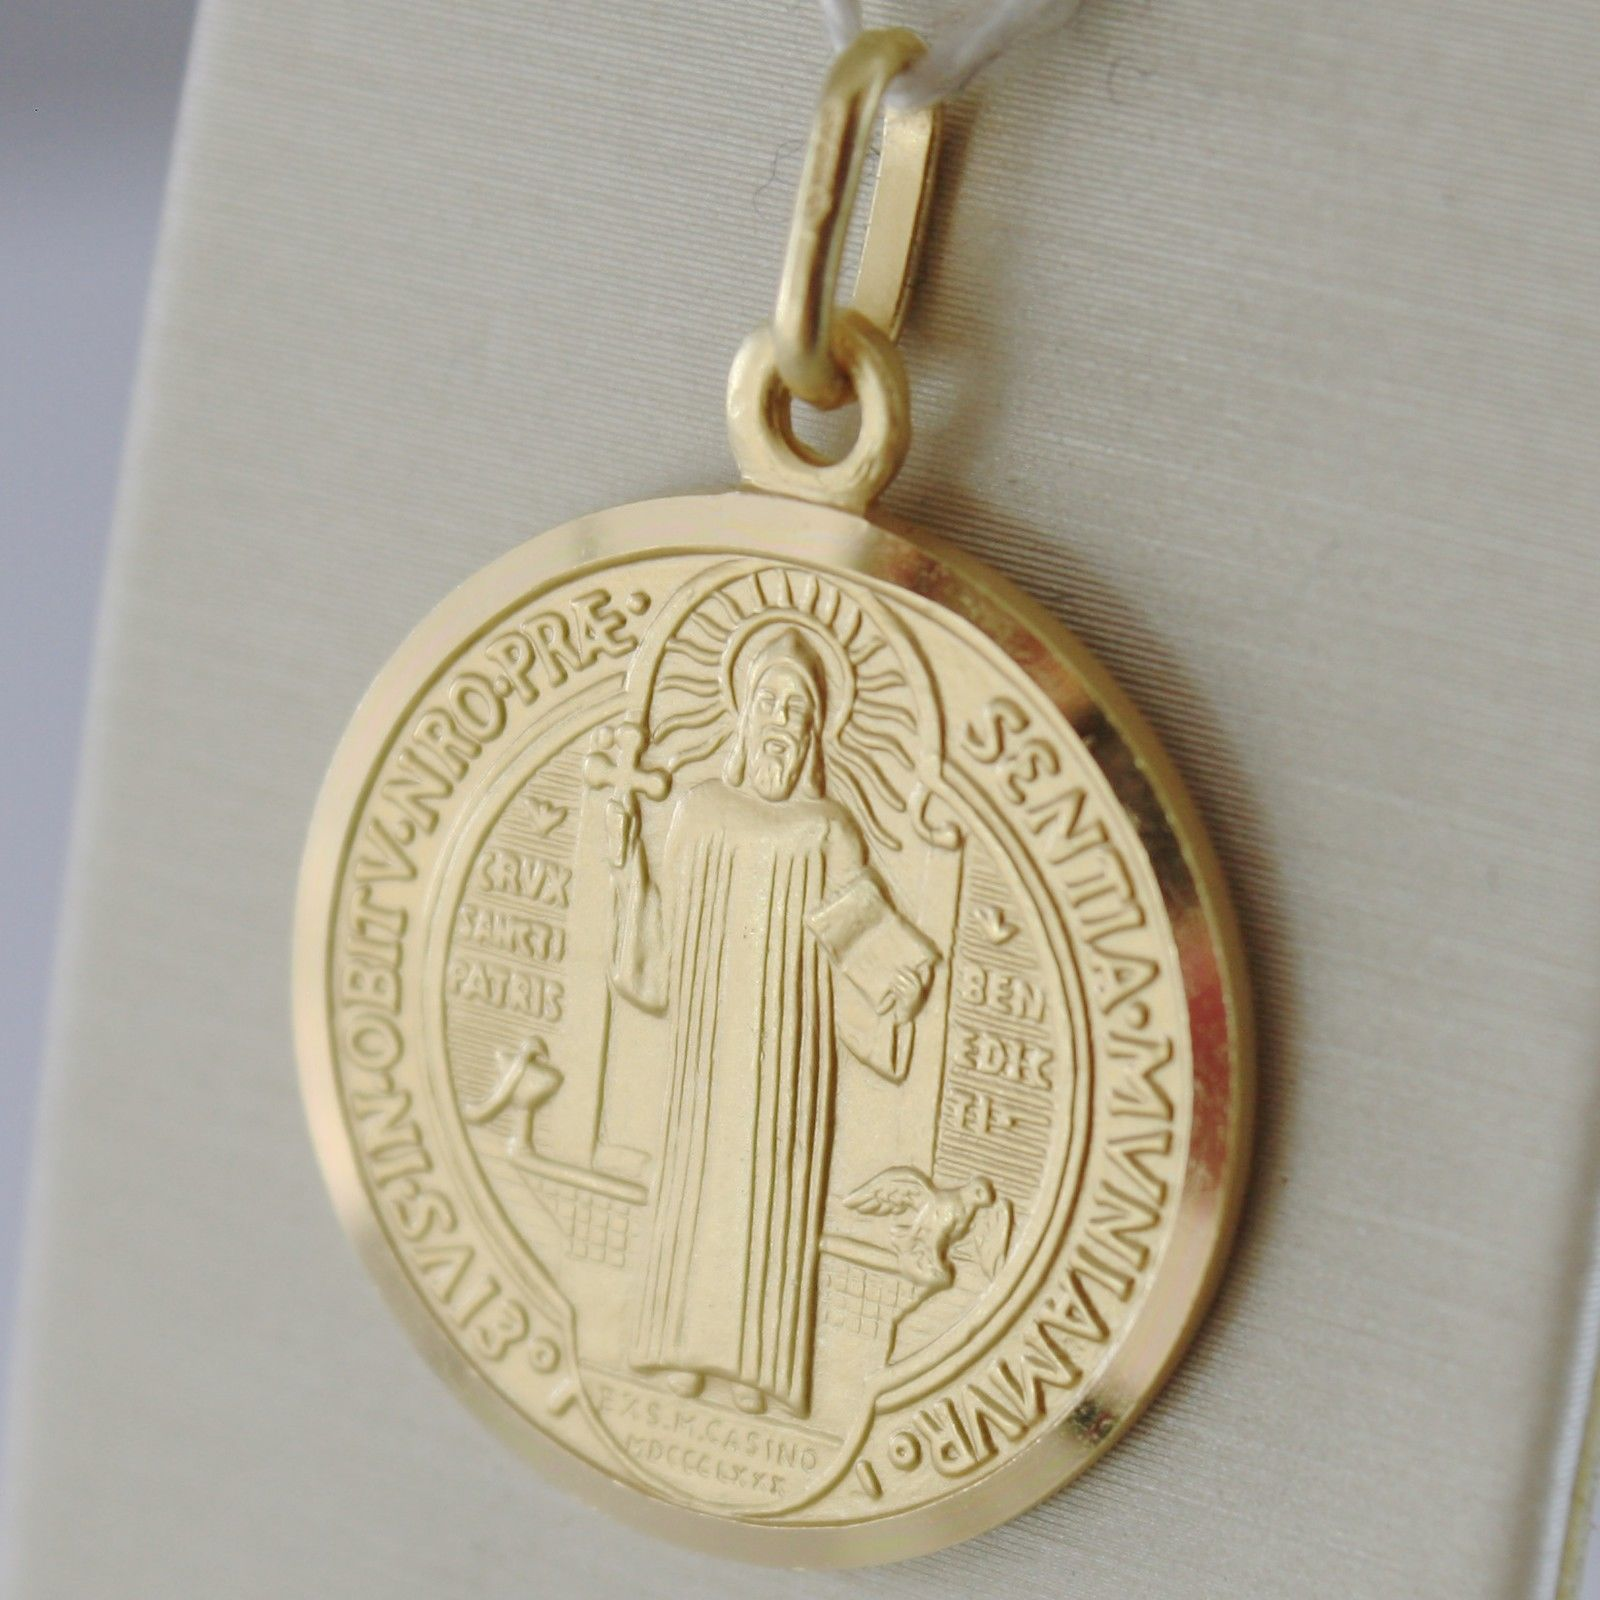 SOLID 18K YELLOW GOLD ST SAINT BENEDICT PROTECTION MEDAL CROSS, MADE IN ITALY